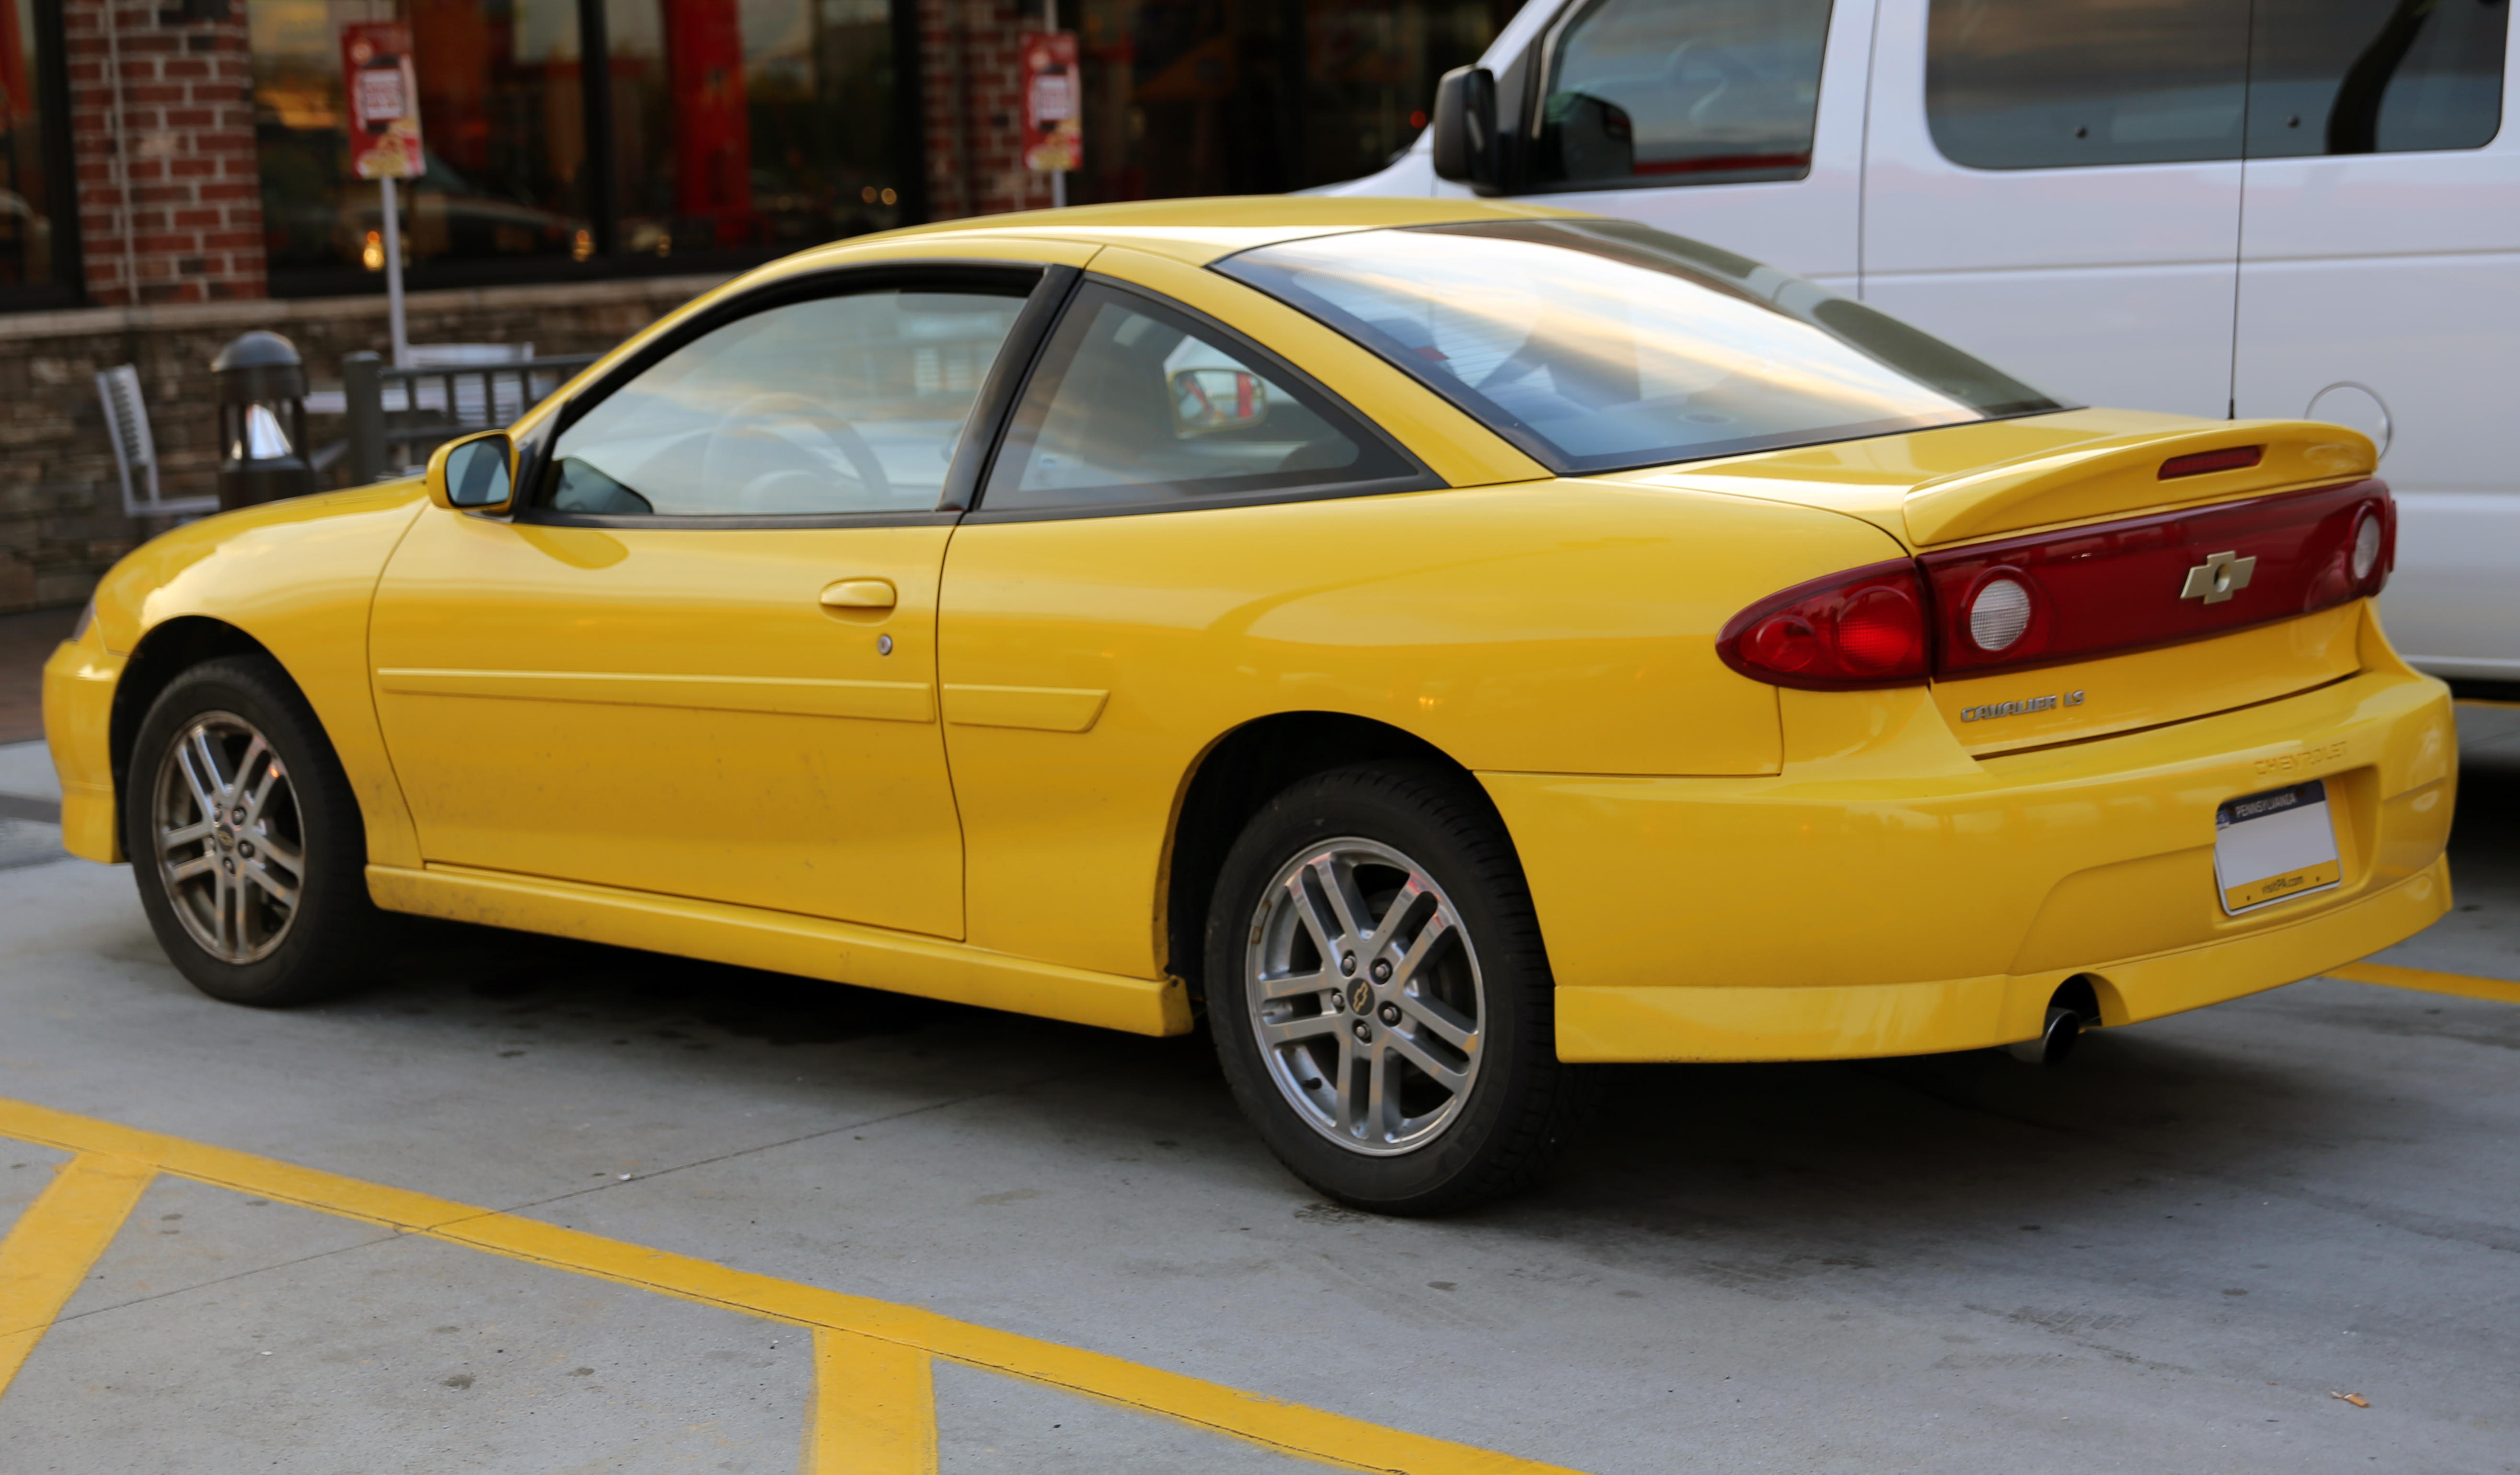 chevrolet cavalier wikiwand chevrolet cavalier wikiwand